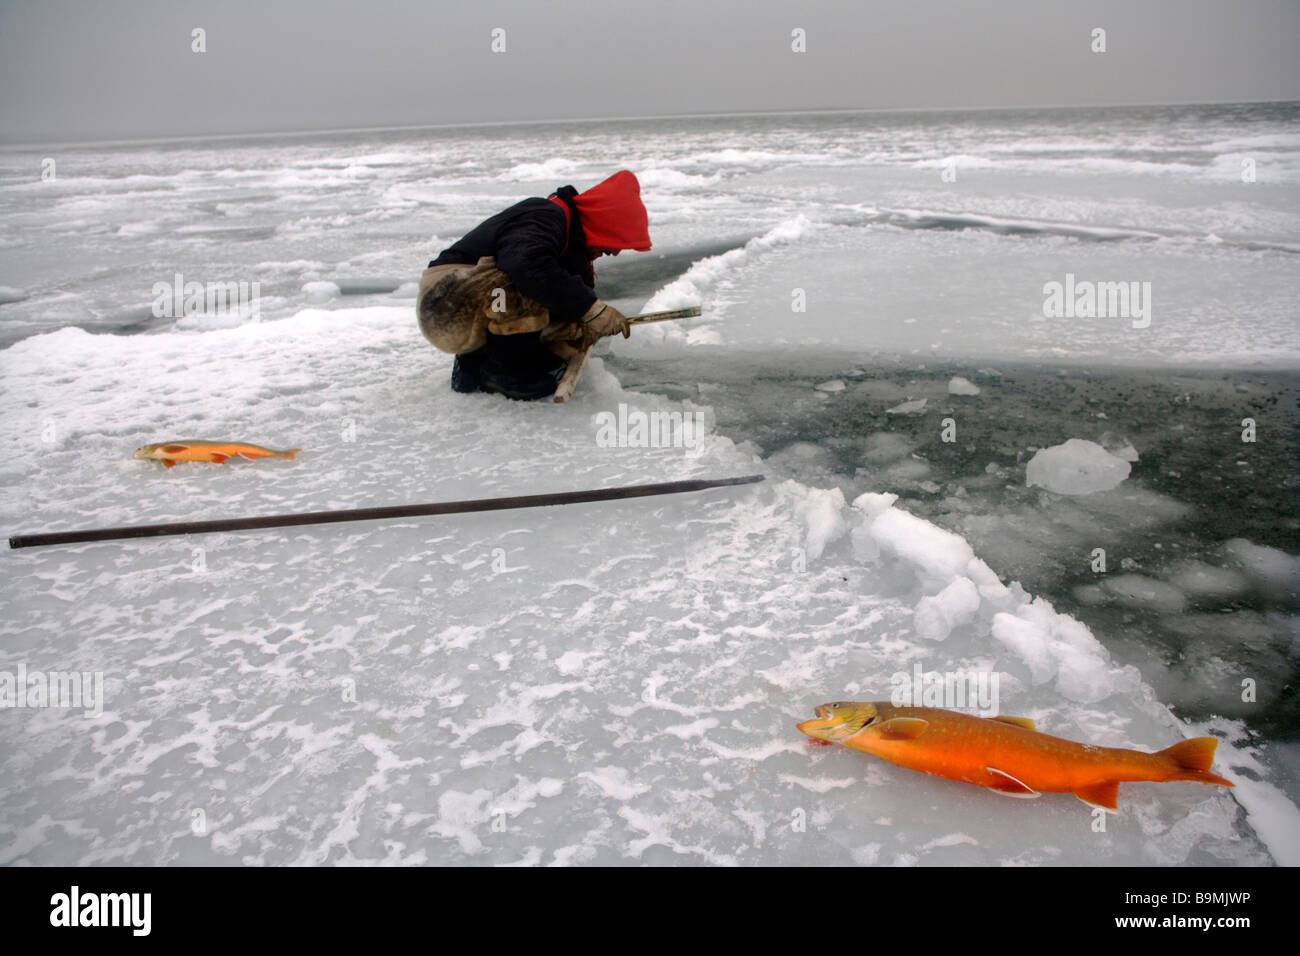 Canadian Ranger fishing for salmon on sea ice, Canadian Arctic, Canada - Stock Image